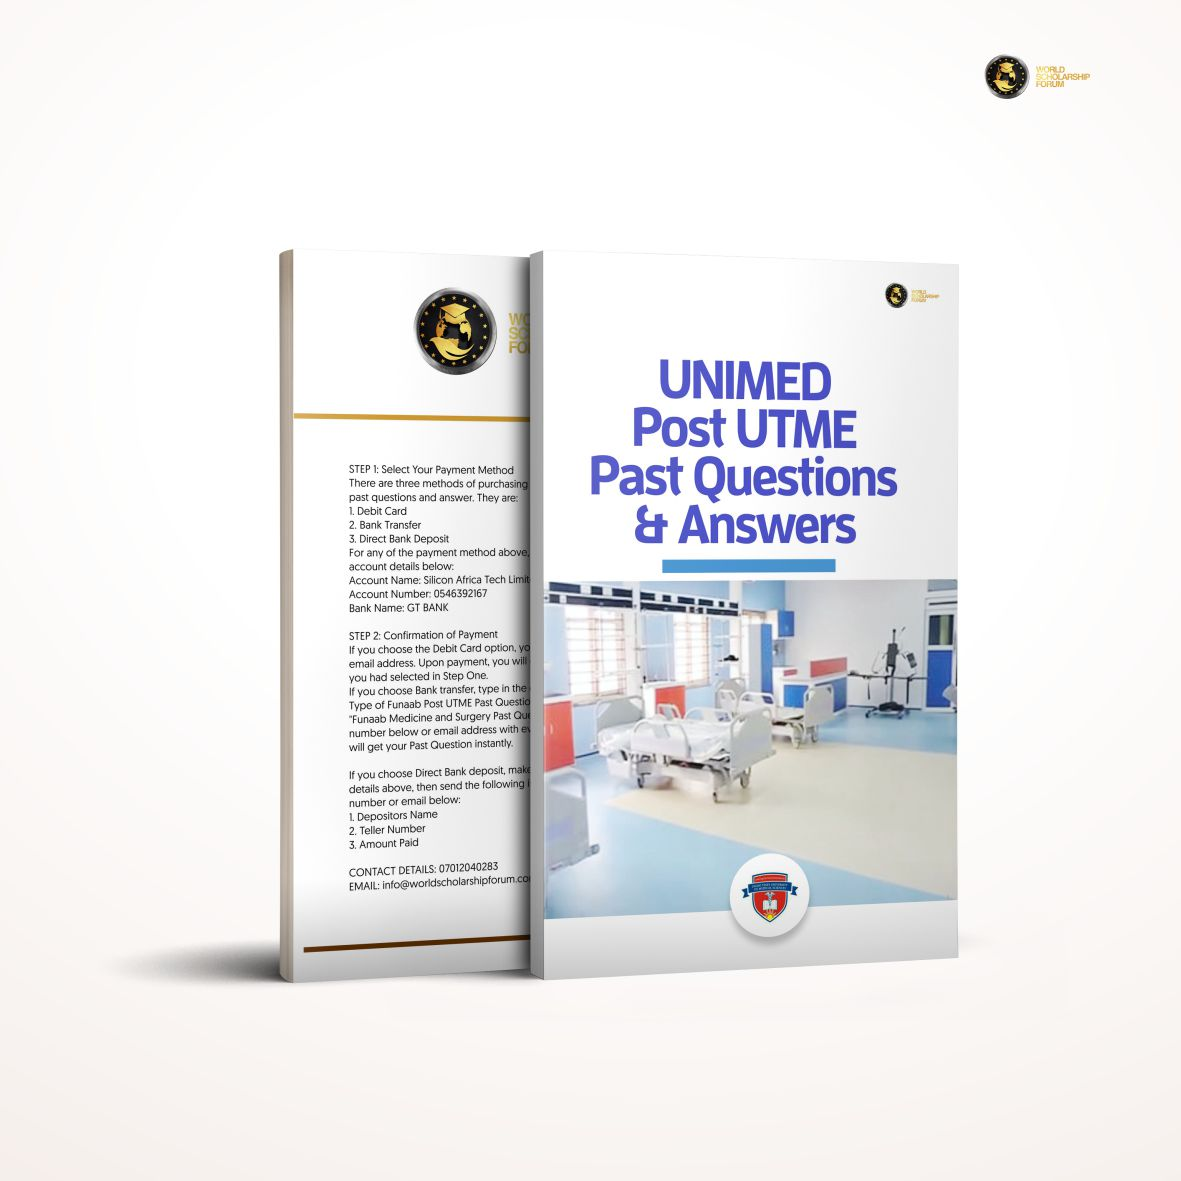 UNIMED-post-utme-past-questions-answers